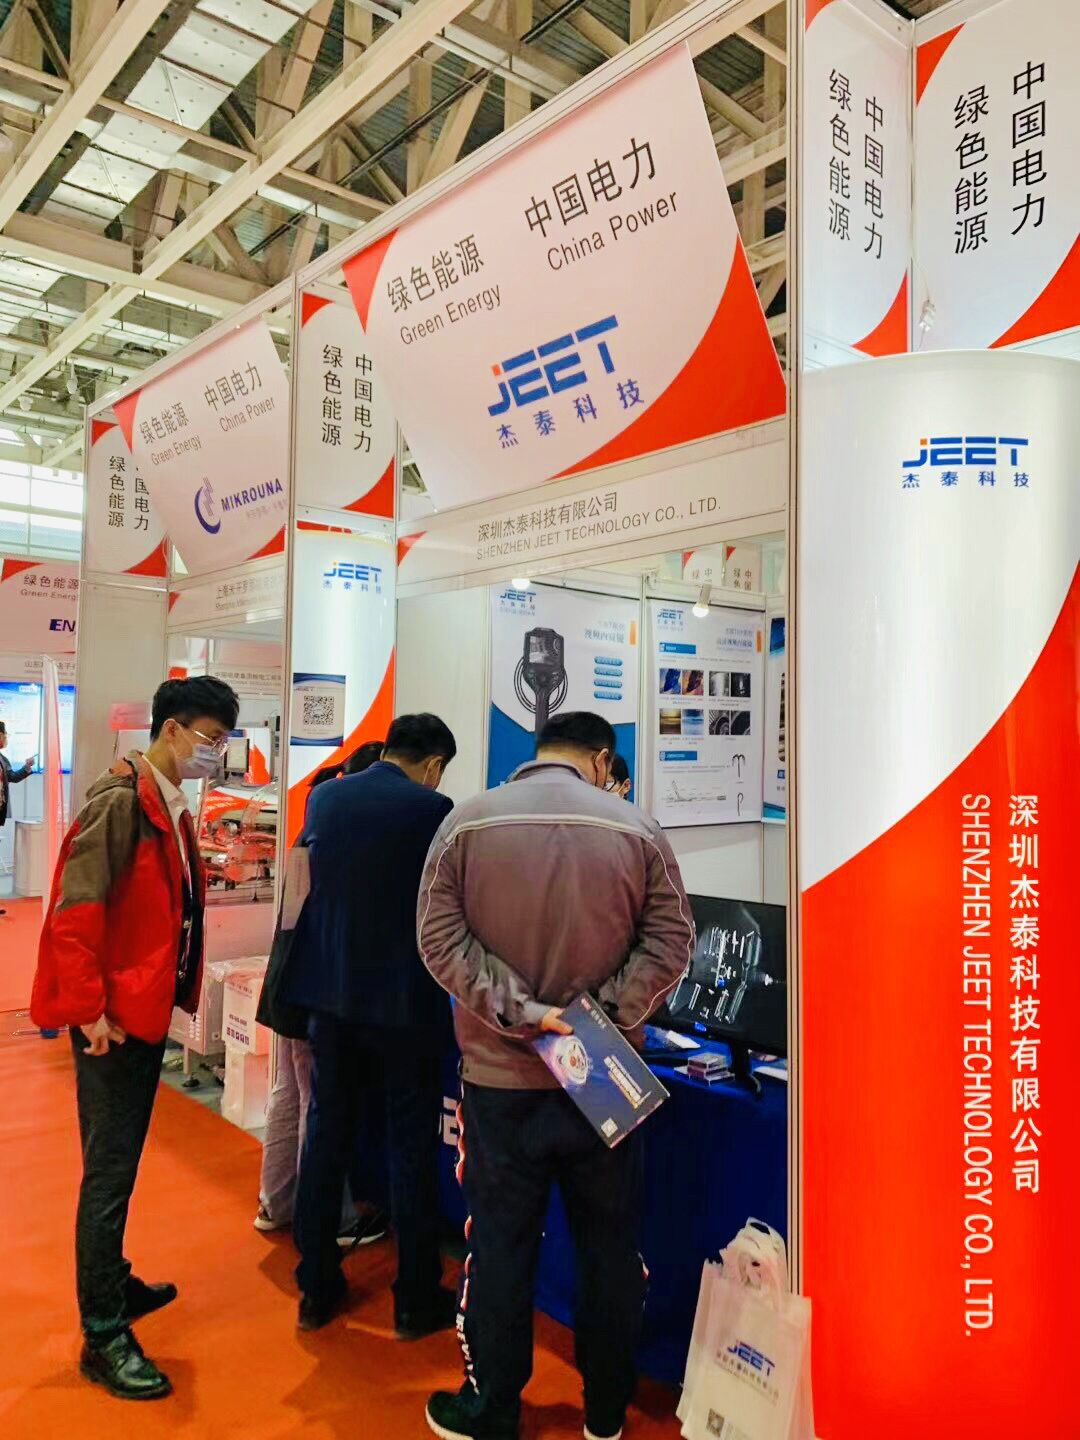 International-Nuclear-Power-Industry-and-Equipment-Expo.png